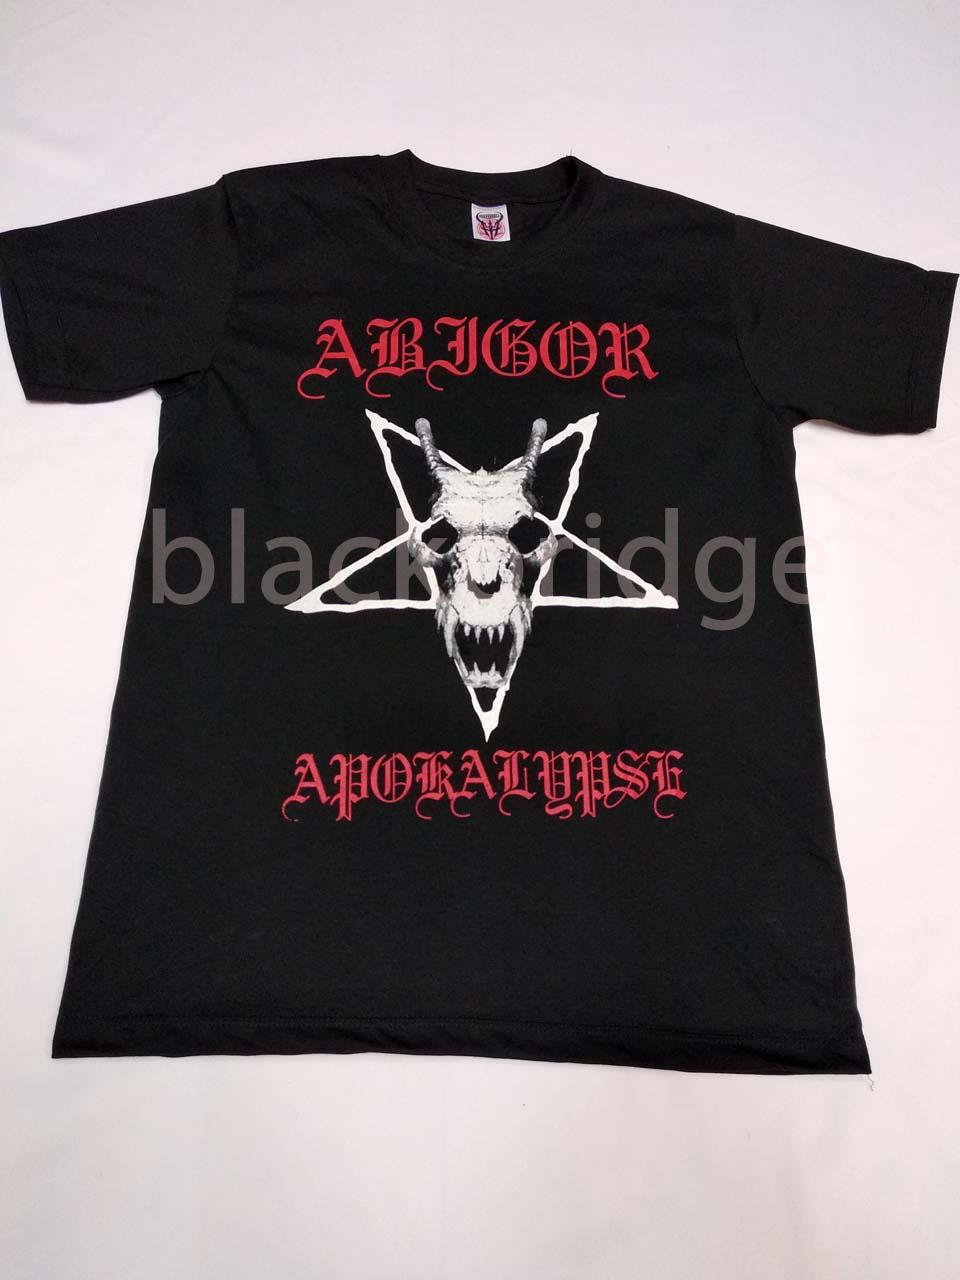 Kaos Pendek / Oblong Band Rock / Metal / Punk PRAPATAN REBEL (Size L) - ABIGOR